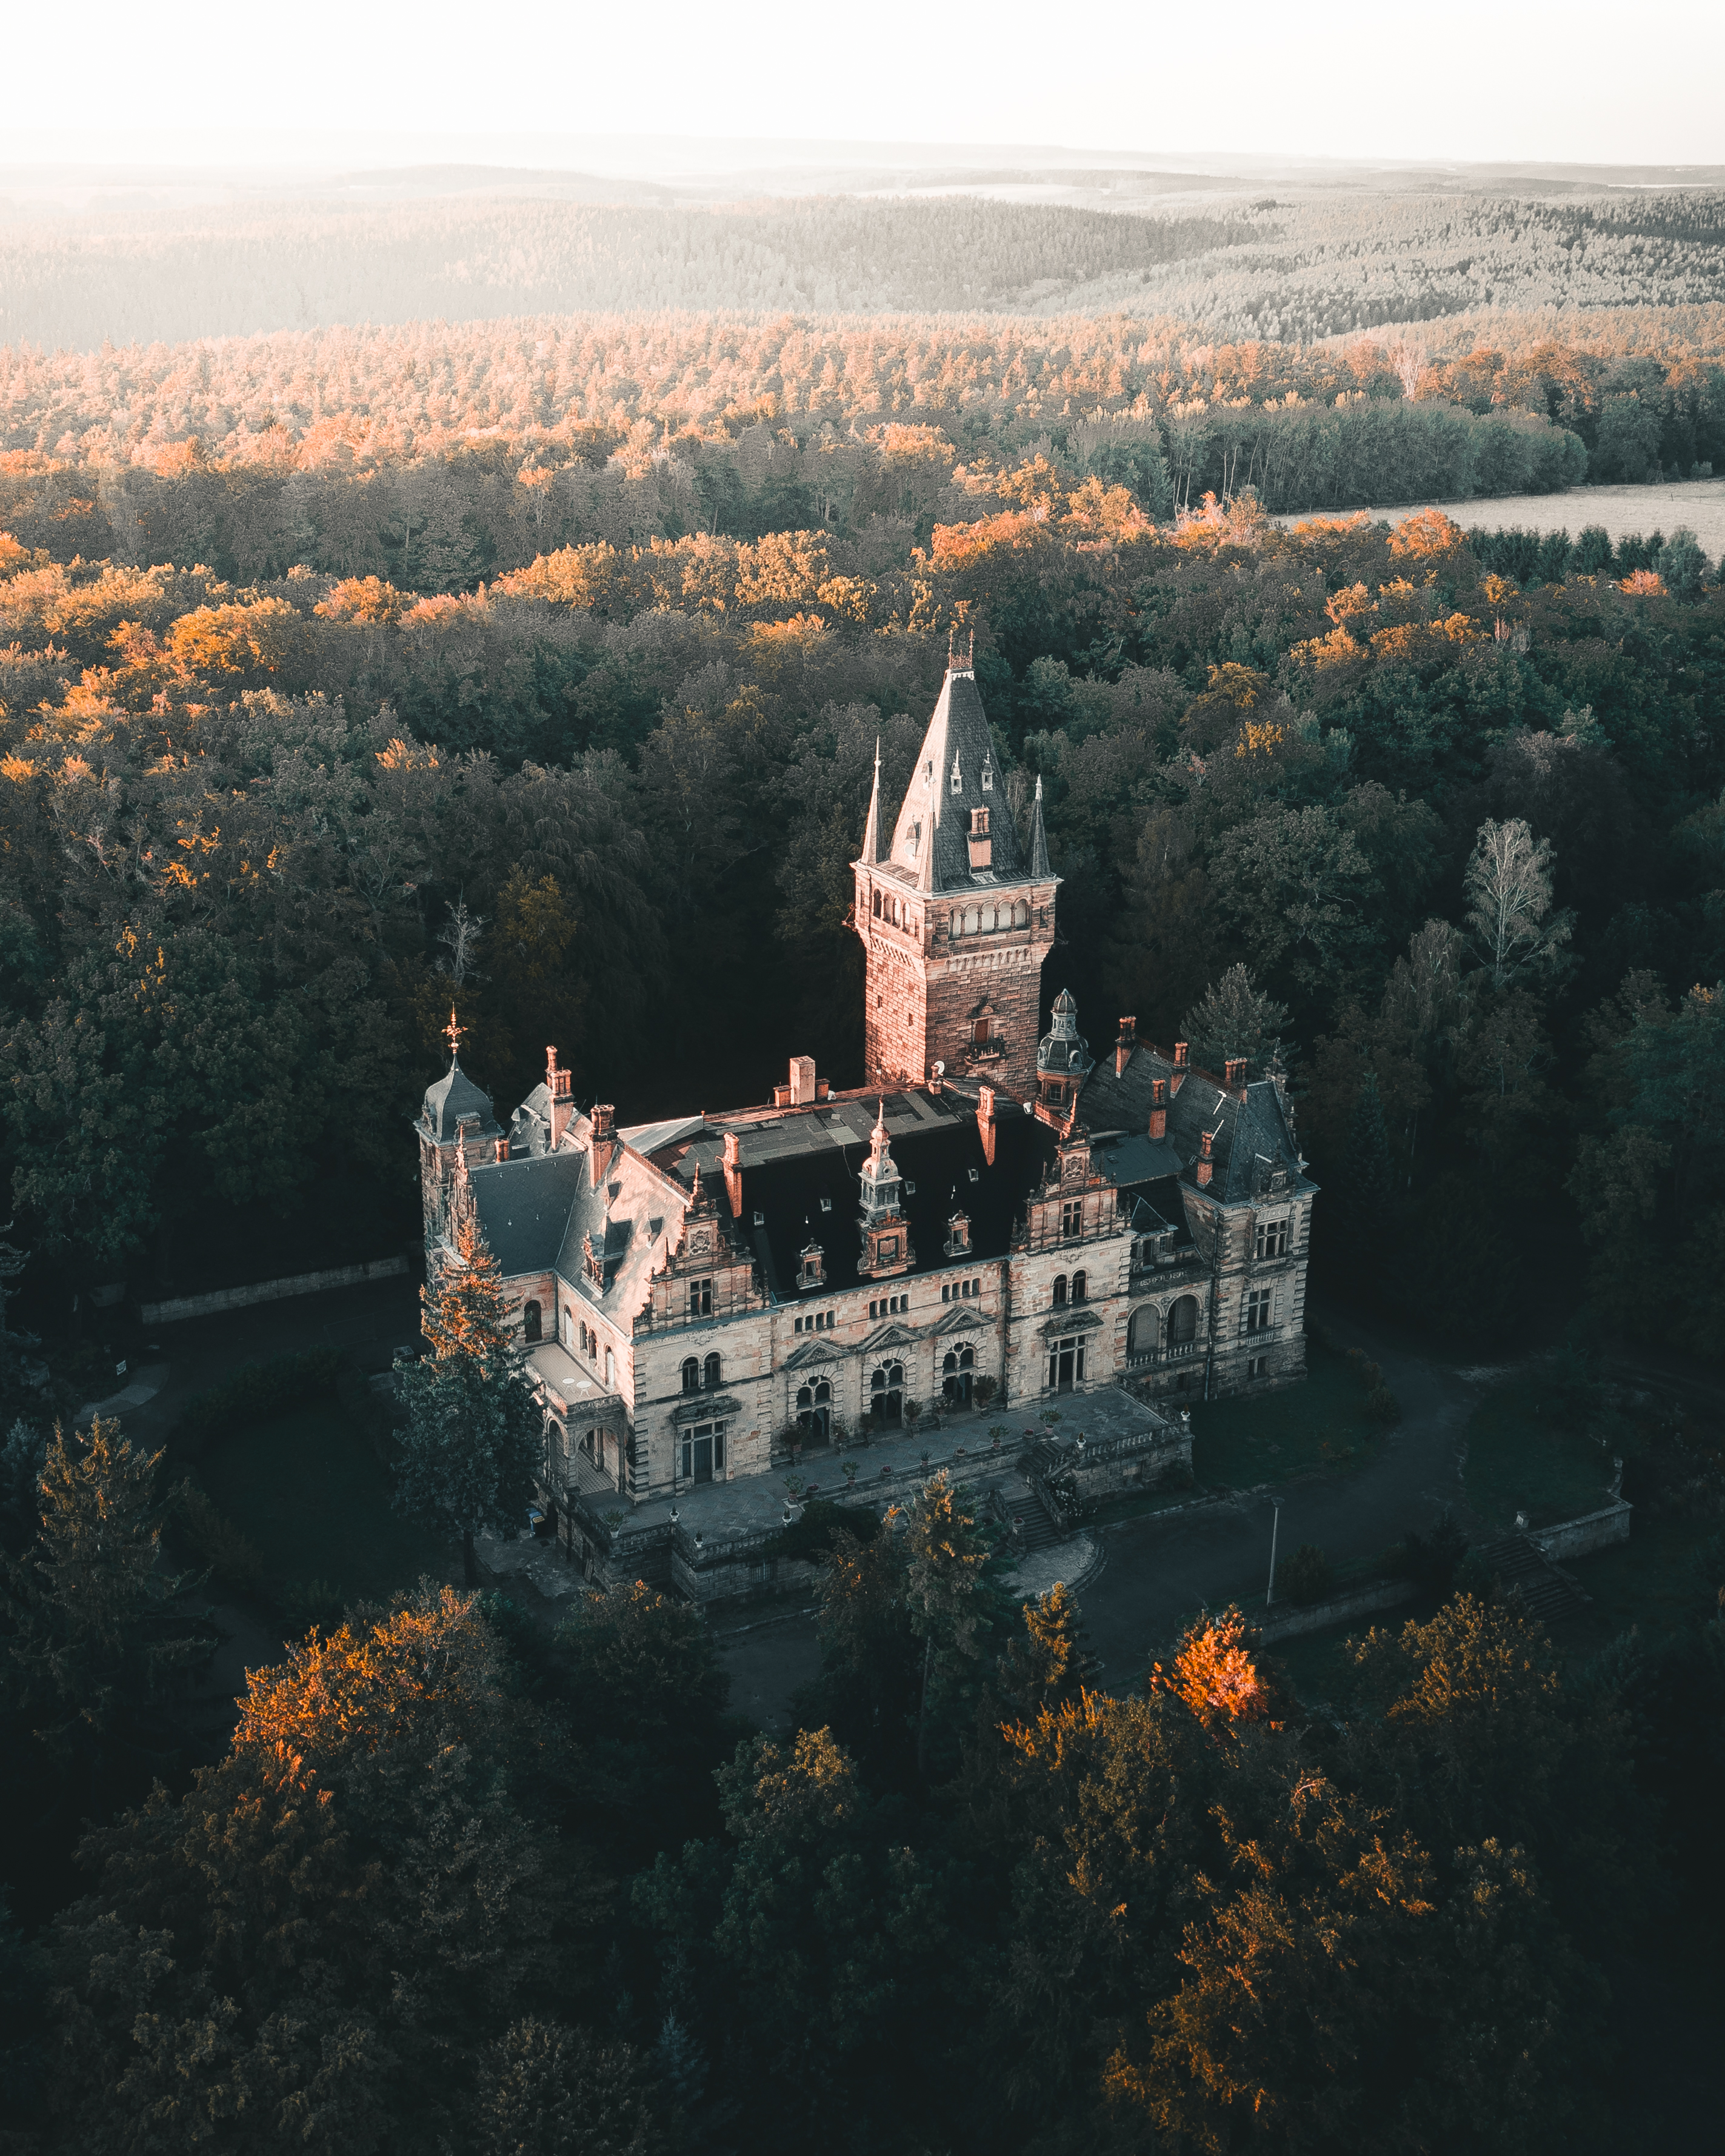 Jagdschloss Hummelshain by picPond Photography